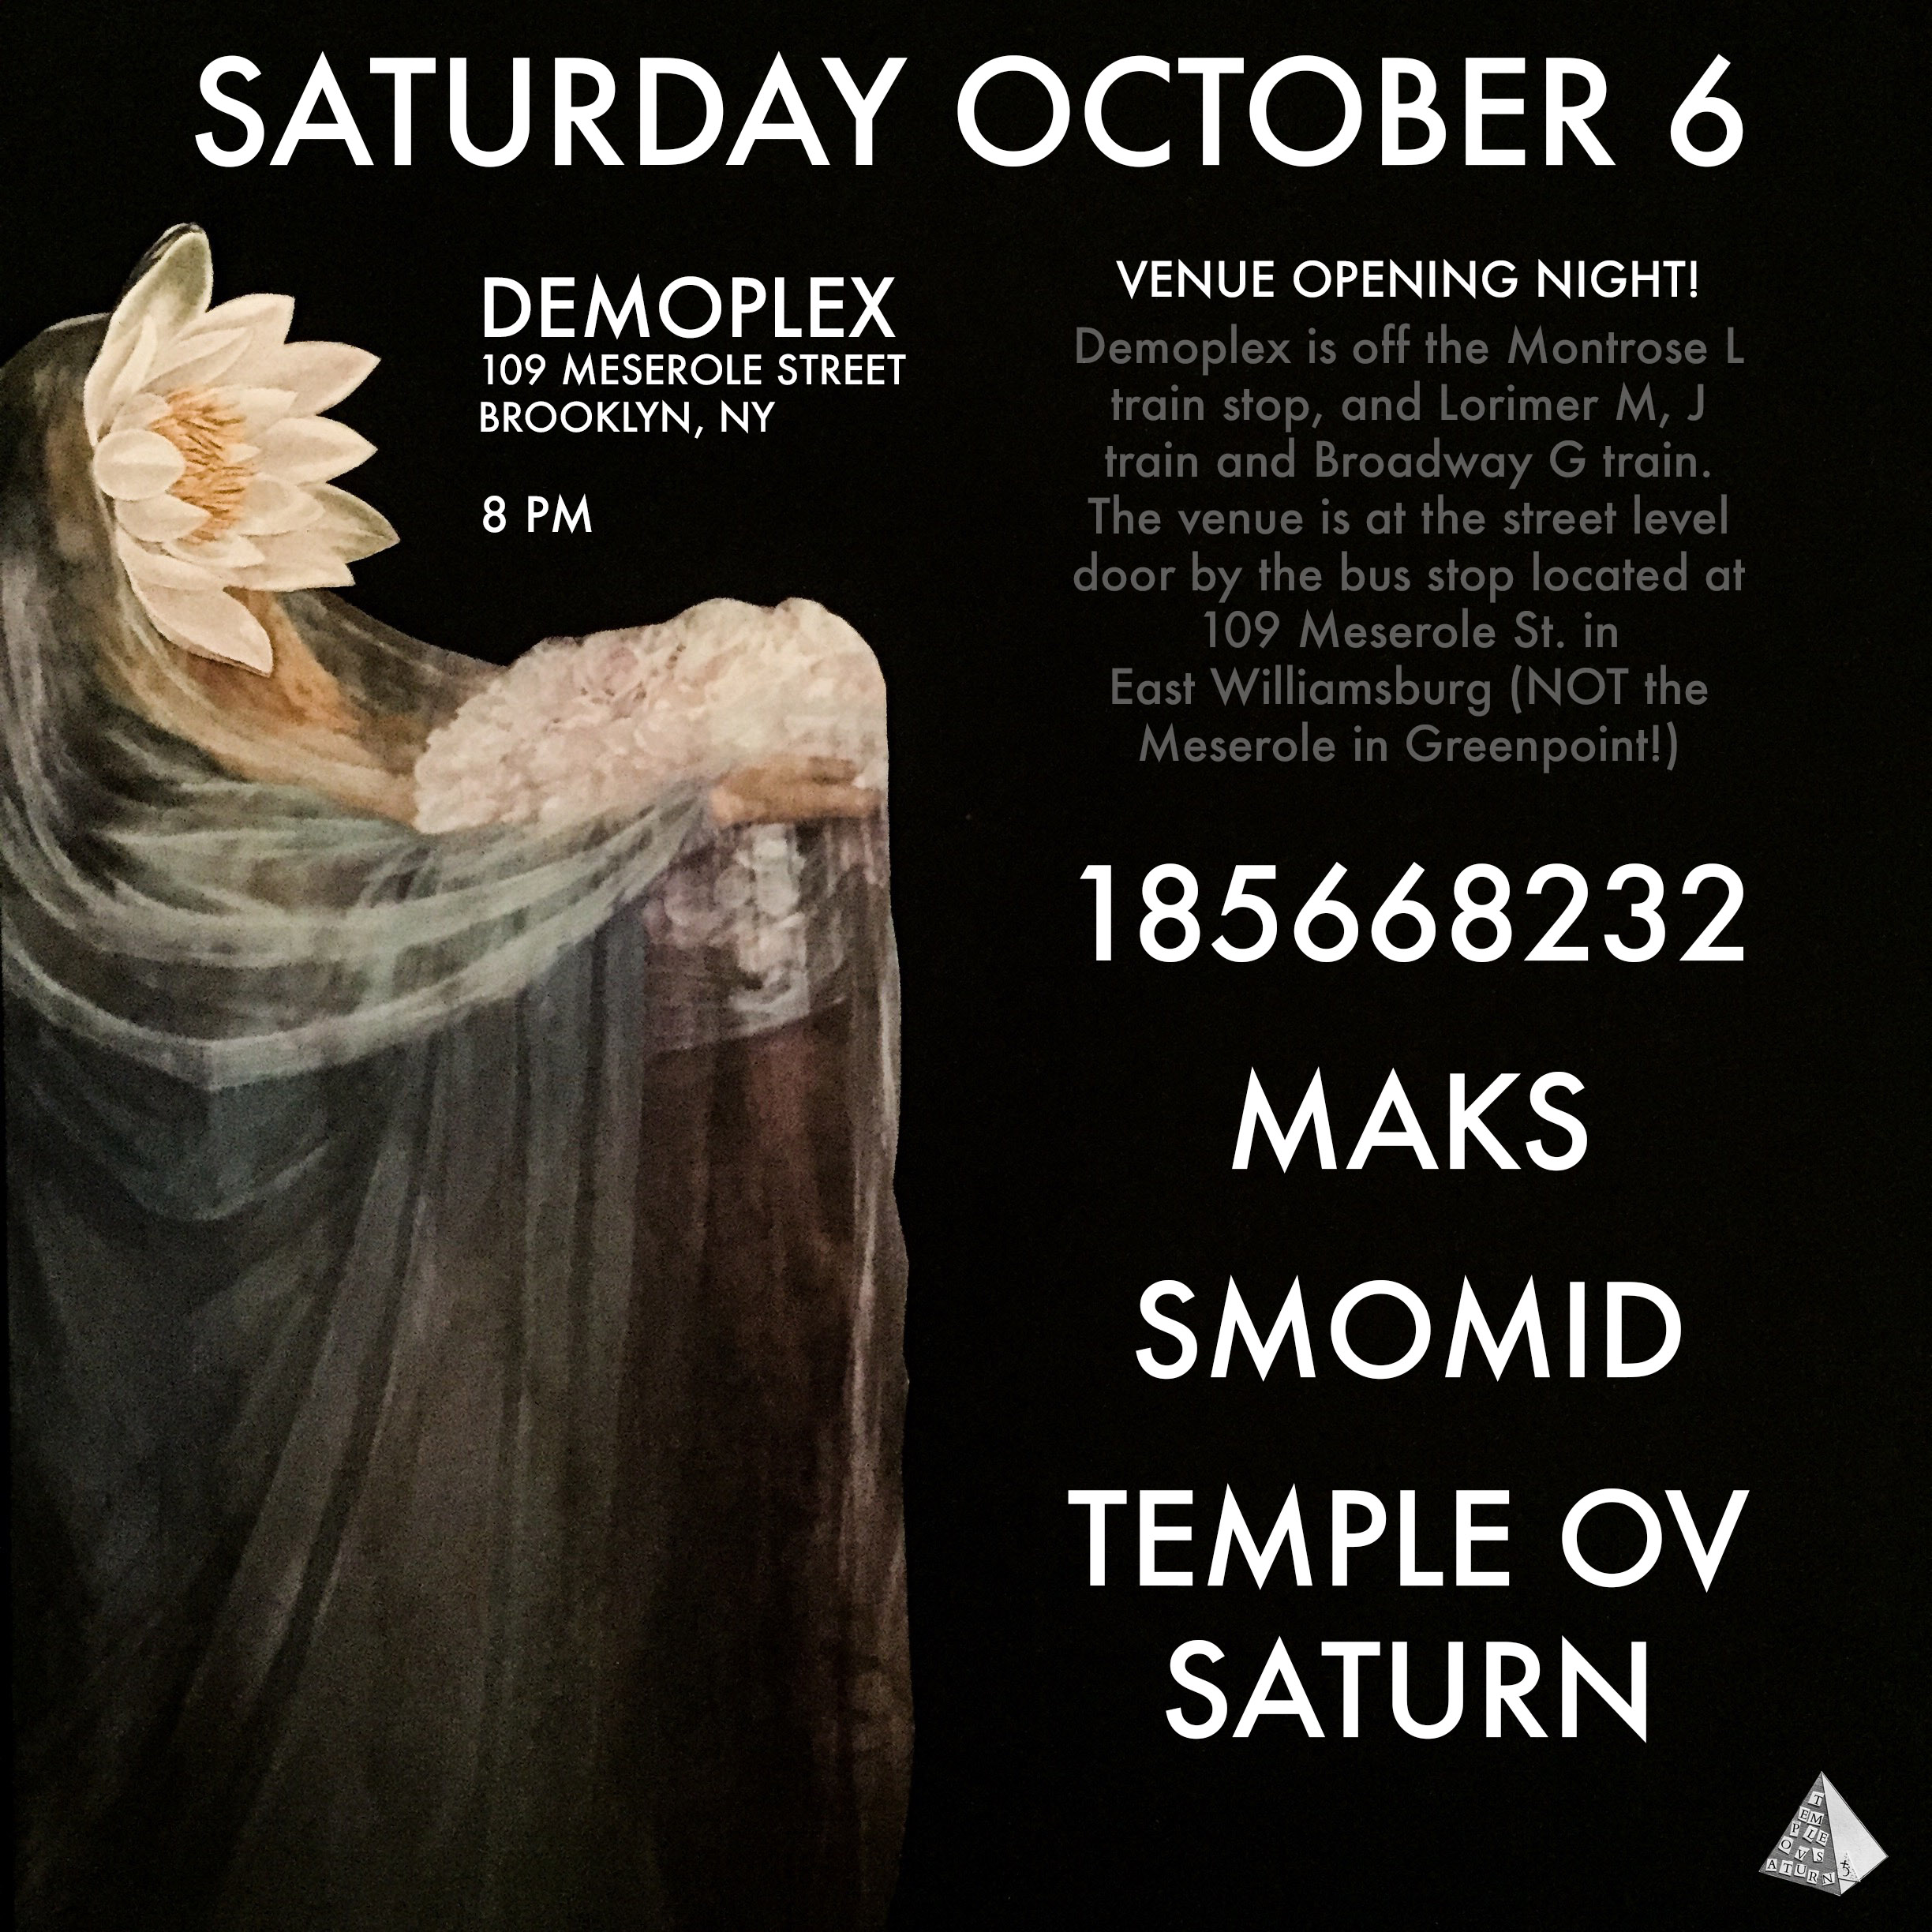 Flyer for Demoplex gig